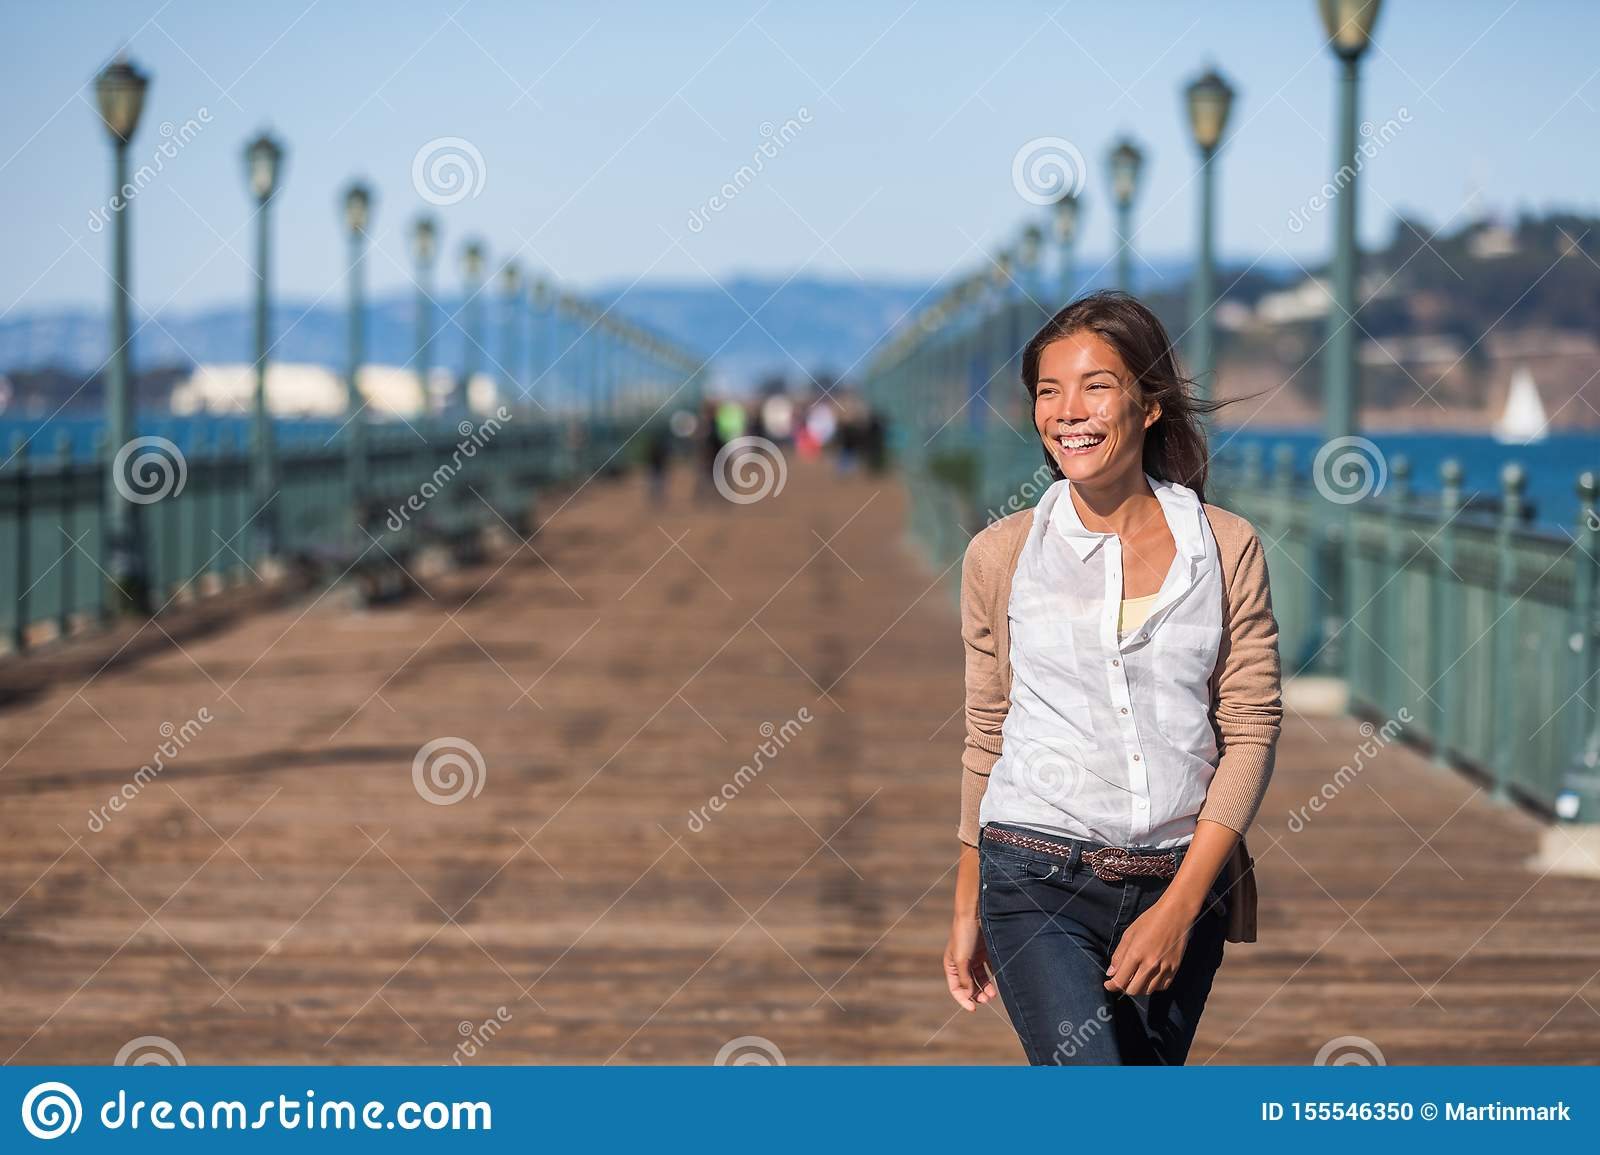 San Francisco travel lifestyle woman walking happy on pier. Asian girl smiling relaxing in harbor city